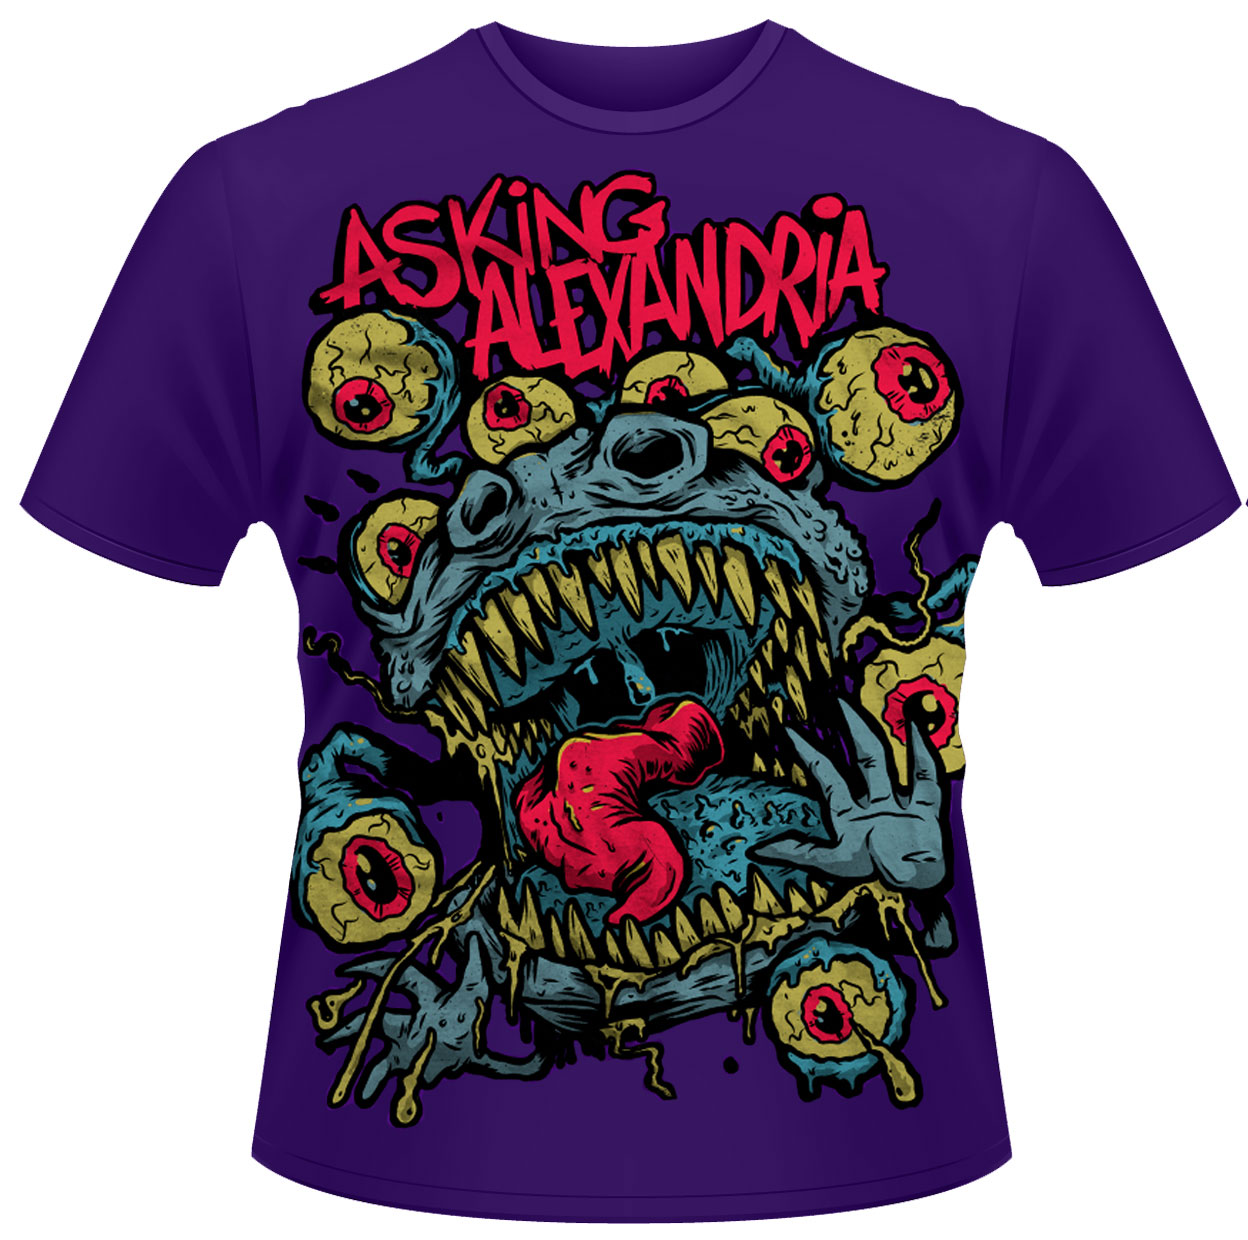 Asking-Alexandria-Eyeballs-T-Shirt-NEW-OFFICIAL